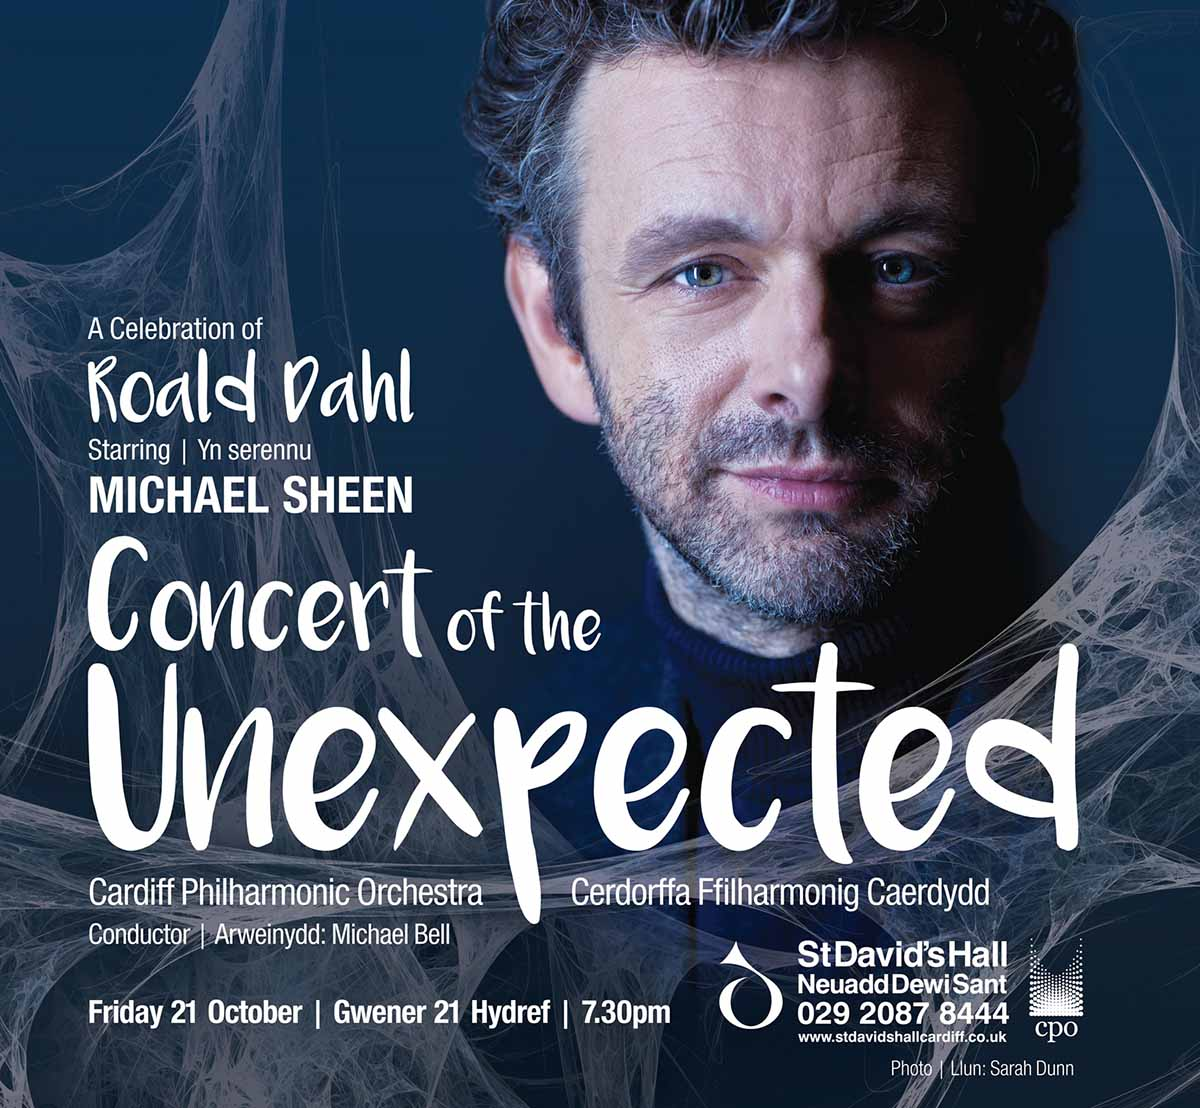 Concert of the Unexpected